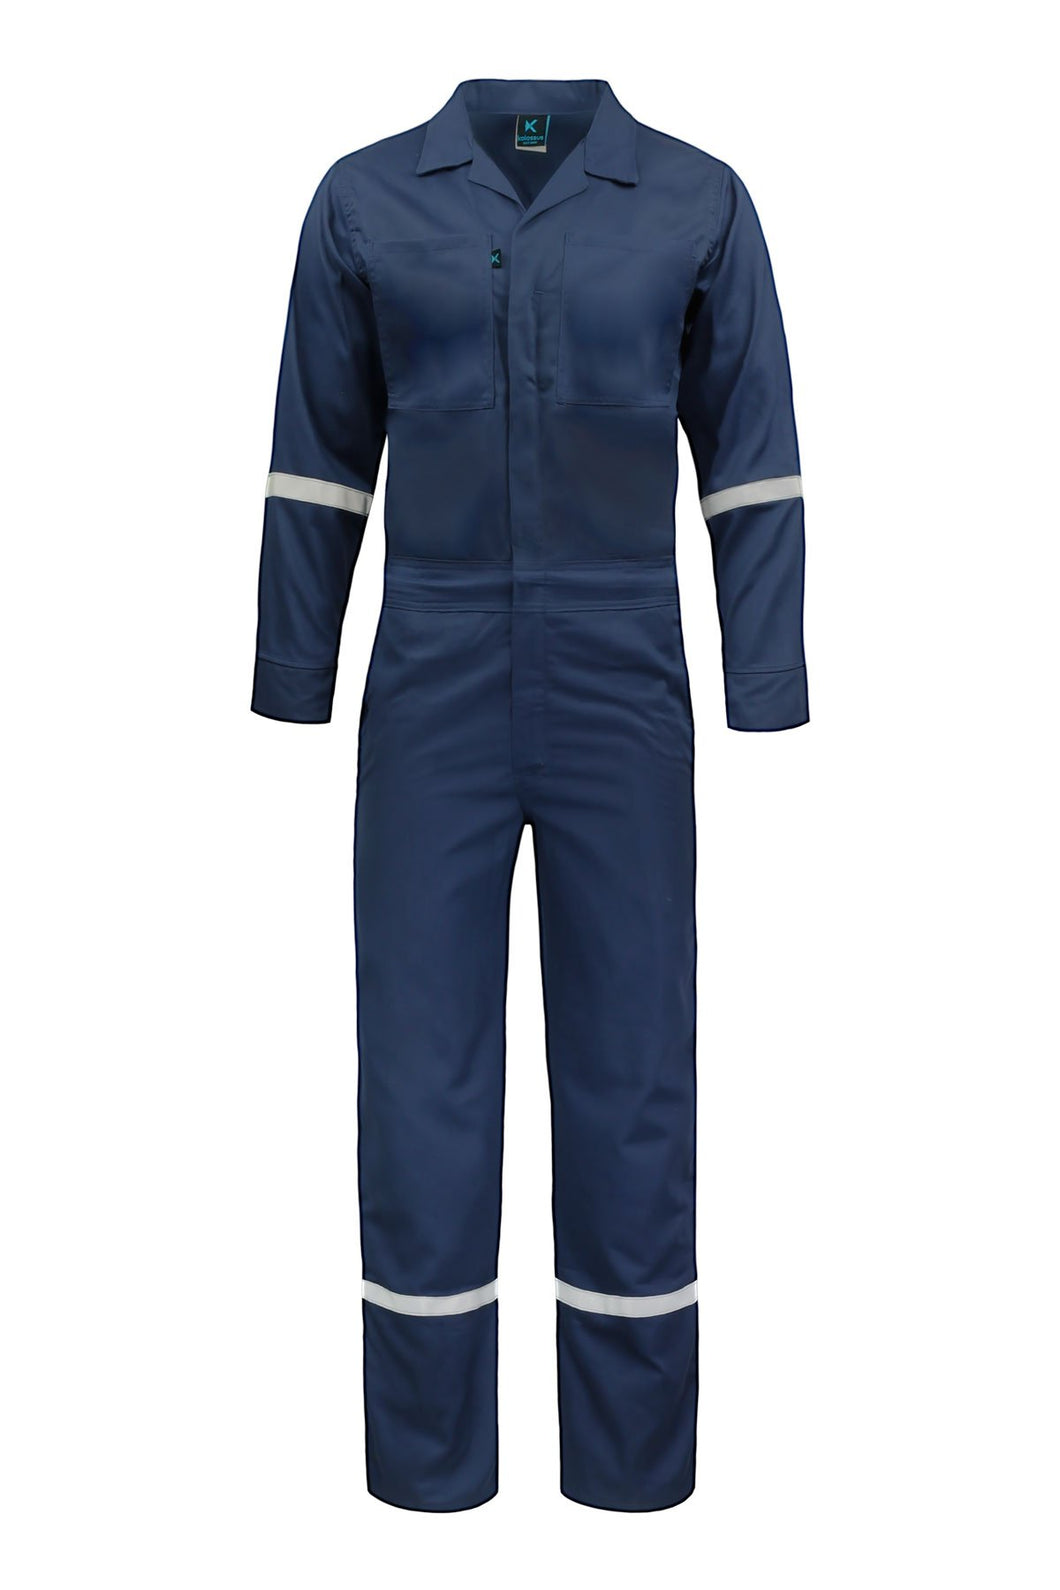 KC13 - Kolossus Defense 88/12 Flame Resistant 7oz Cotton / Polyamide Twill Coverall